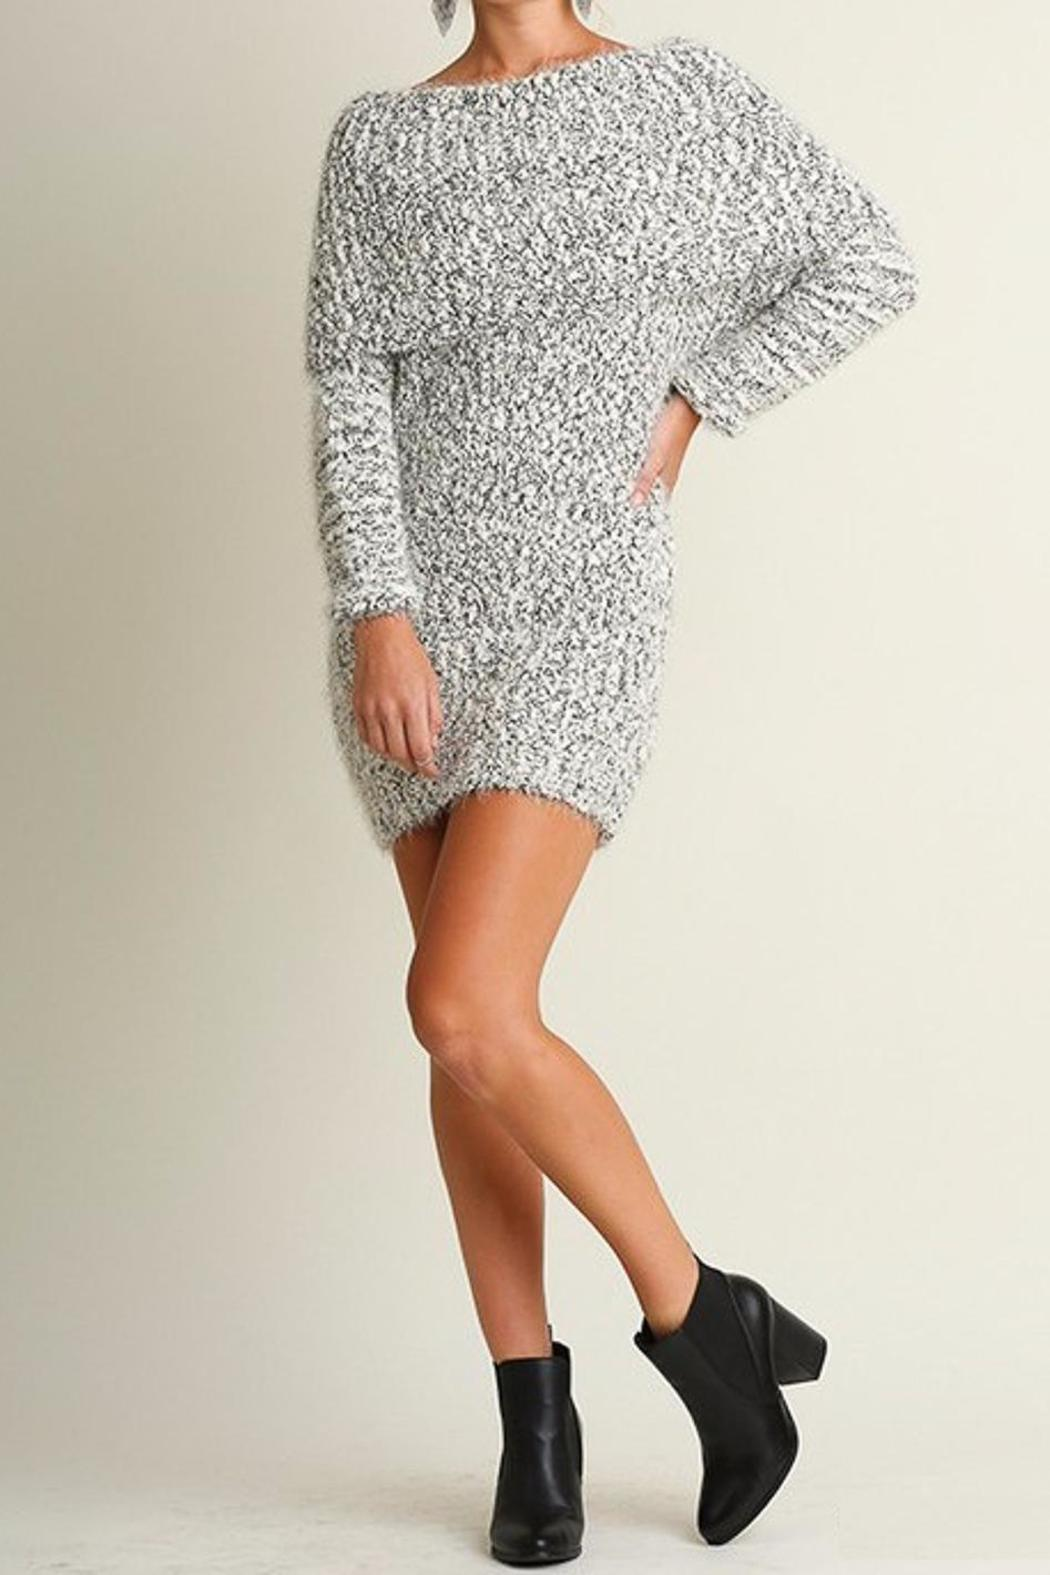 People Outfitter Chunky Knit Dress - Main Image